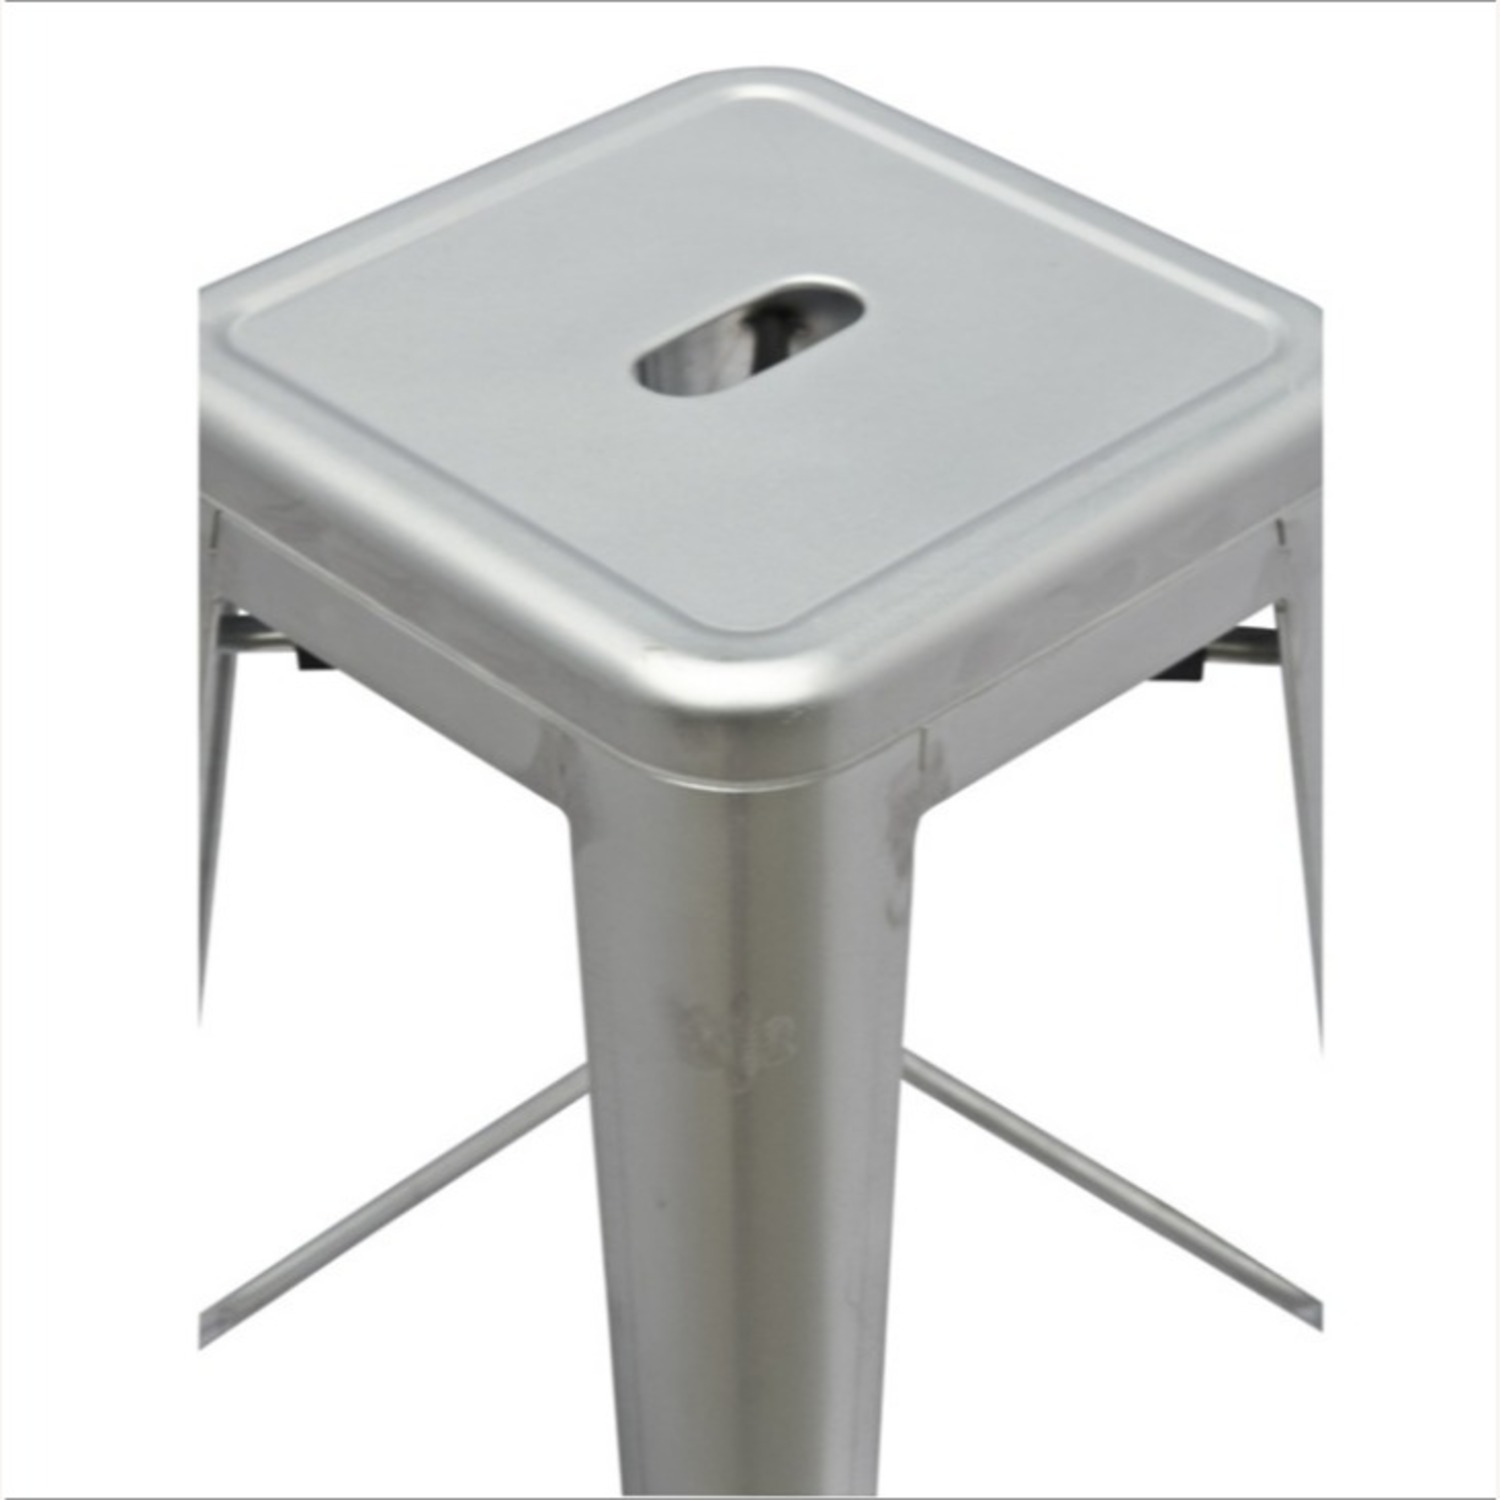 Contemporary Bar Stool In Silver Galvanized Steel - image-5